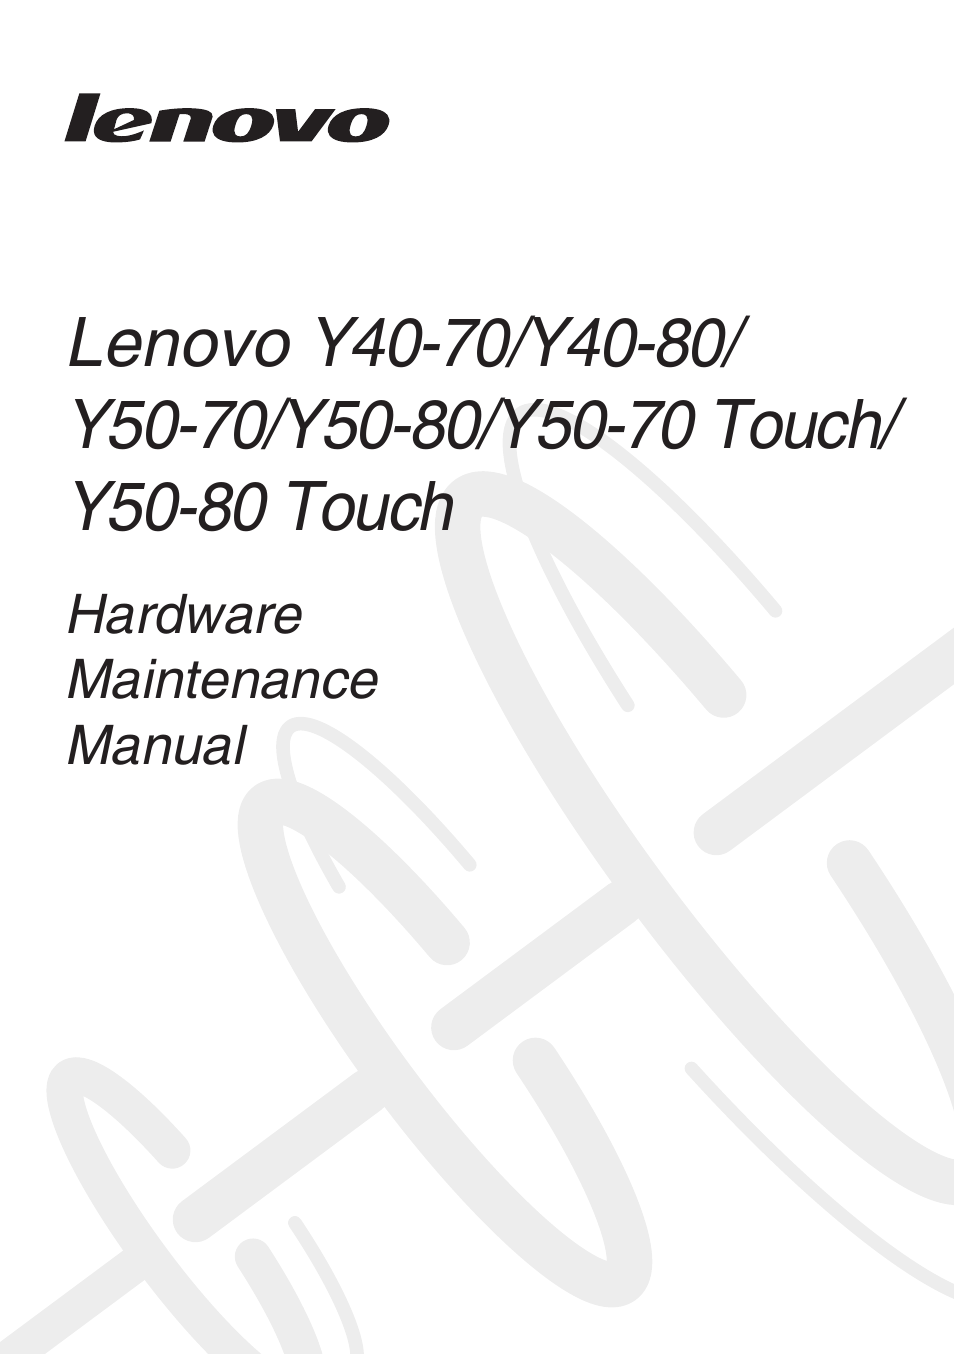 Lenovo Y50-70 User Manual | 106 pages | Also for: Y40-70, Y50-70